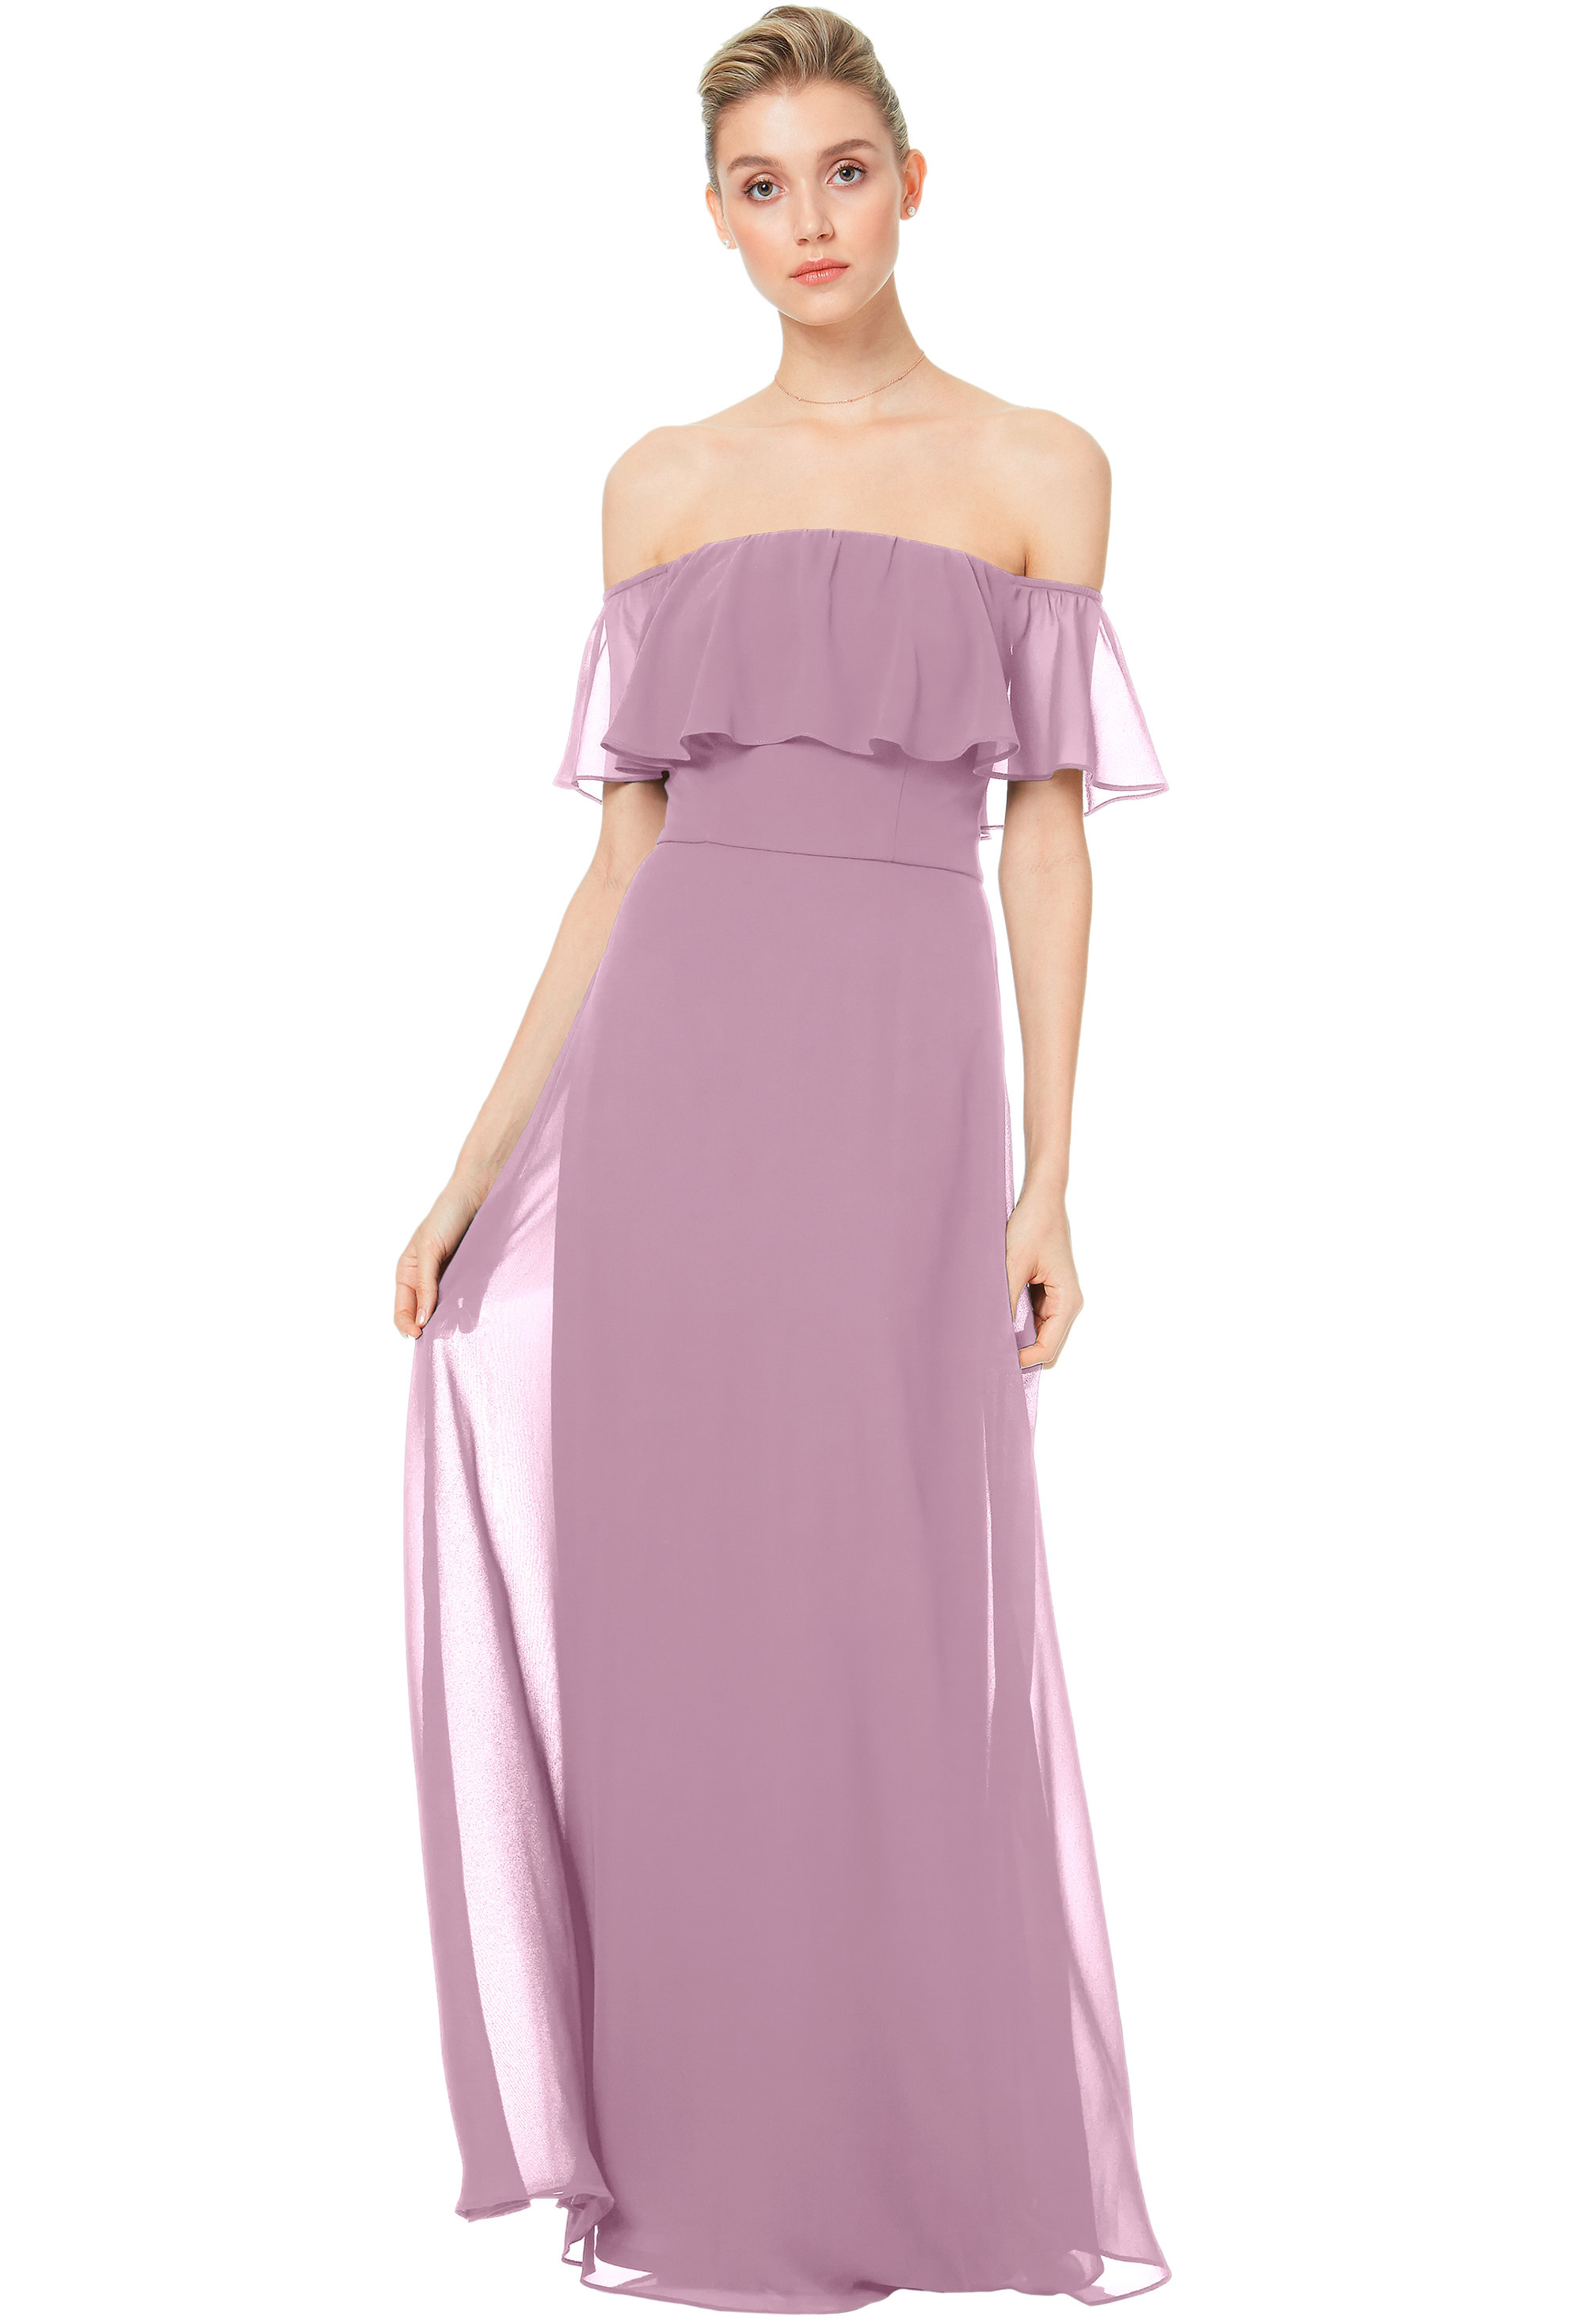 Bill Levkoff WISTERIA Chiffon Off The Shoulder A-line gown, $200.00 Front